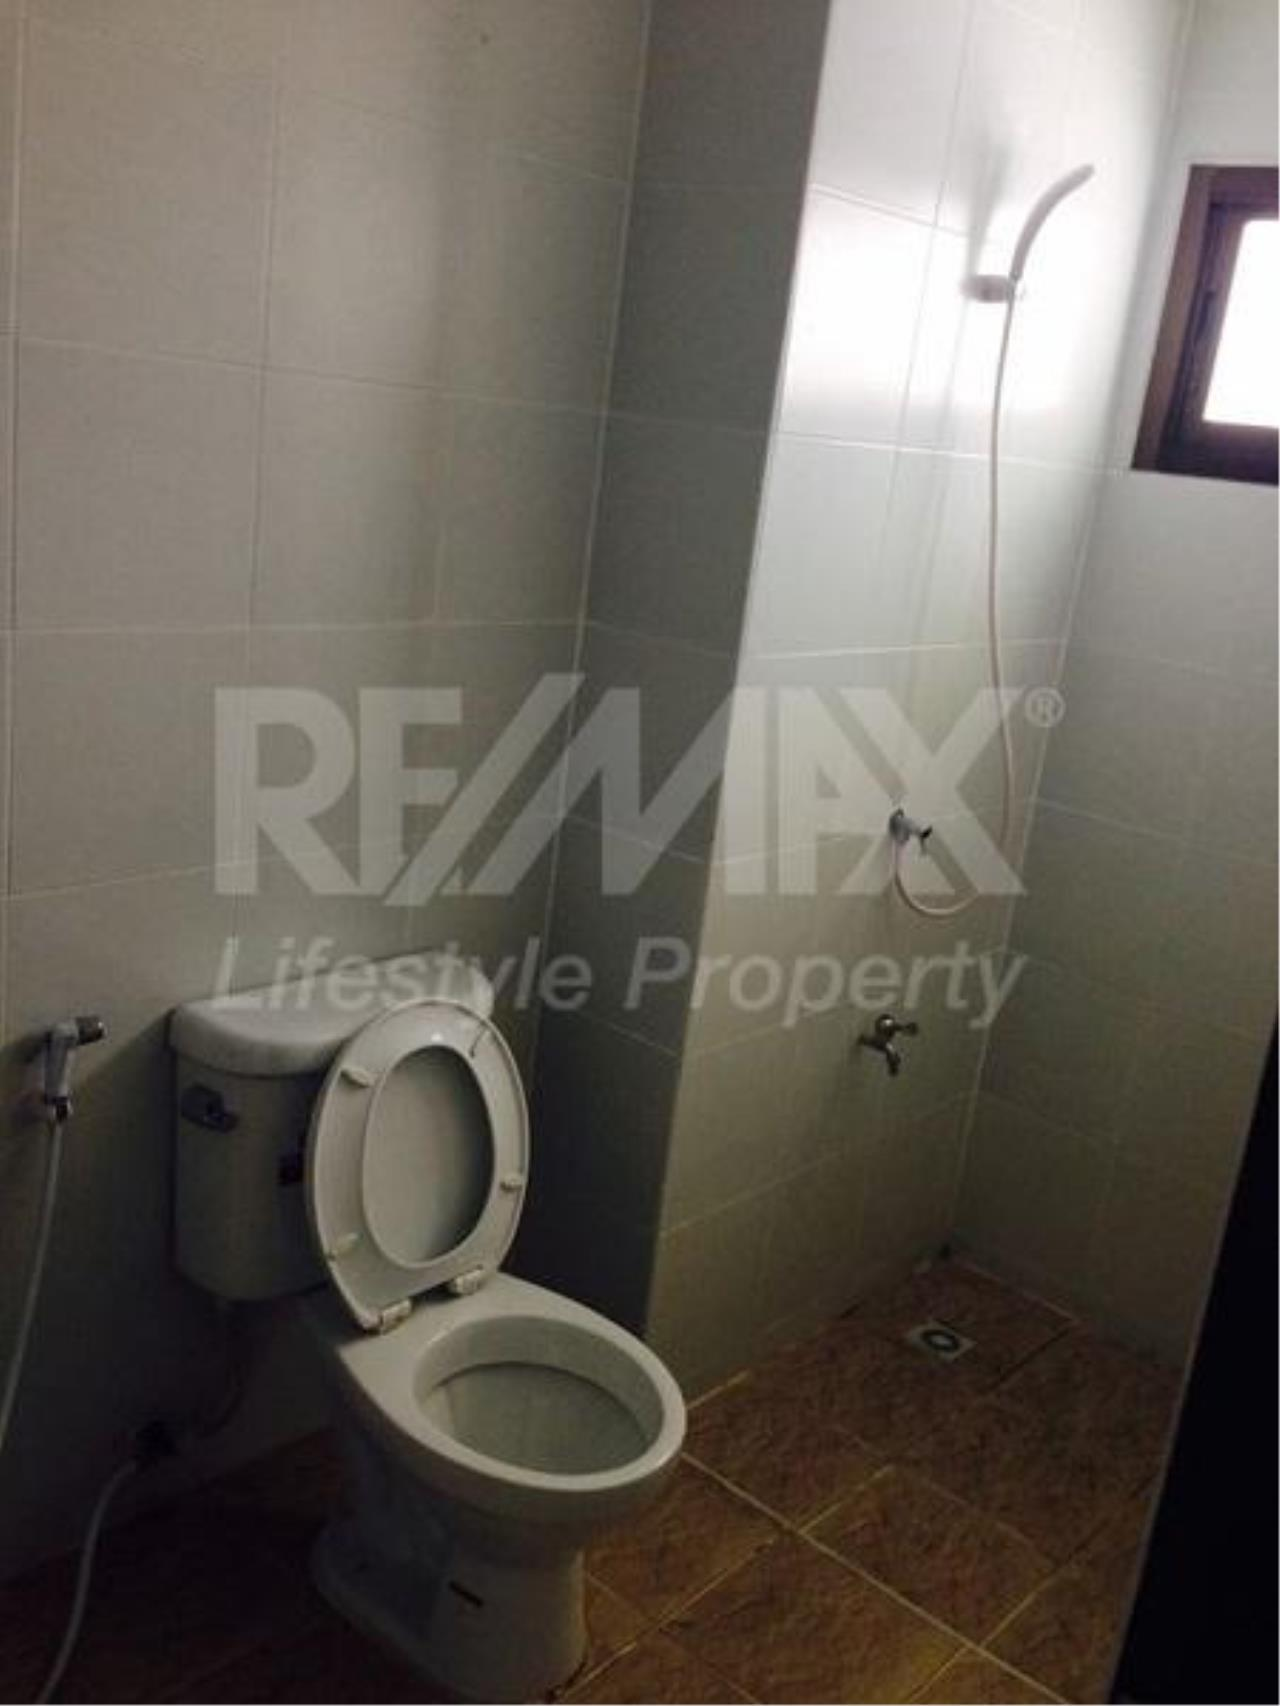 RE/MAX LifeStyle Property Agency's Commercial Rama 2 2